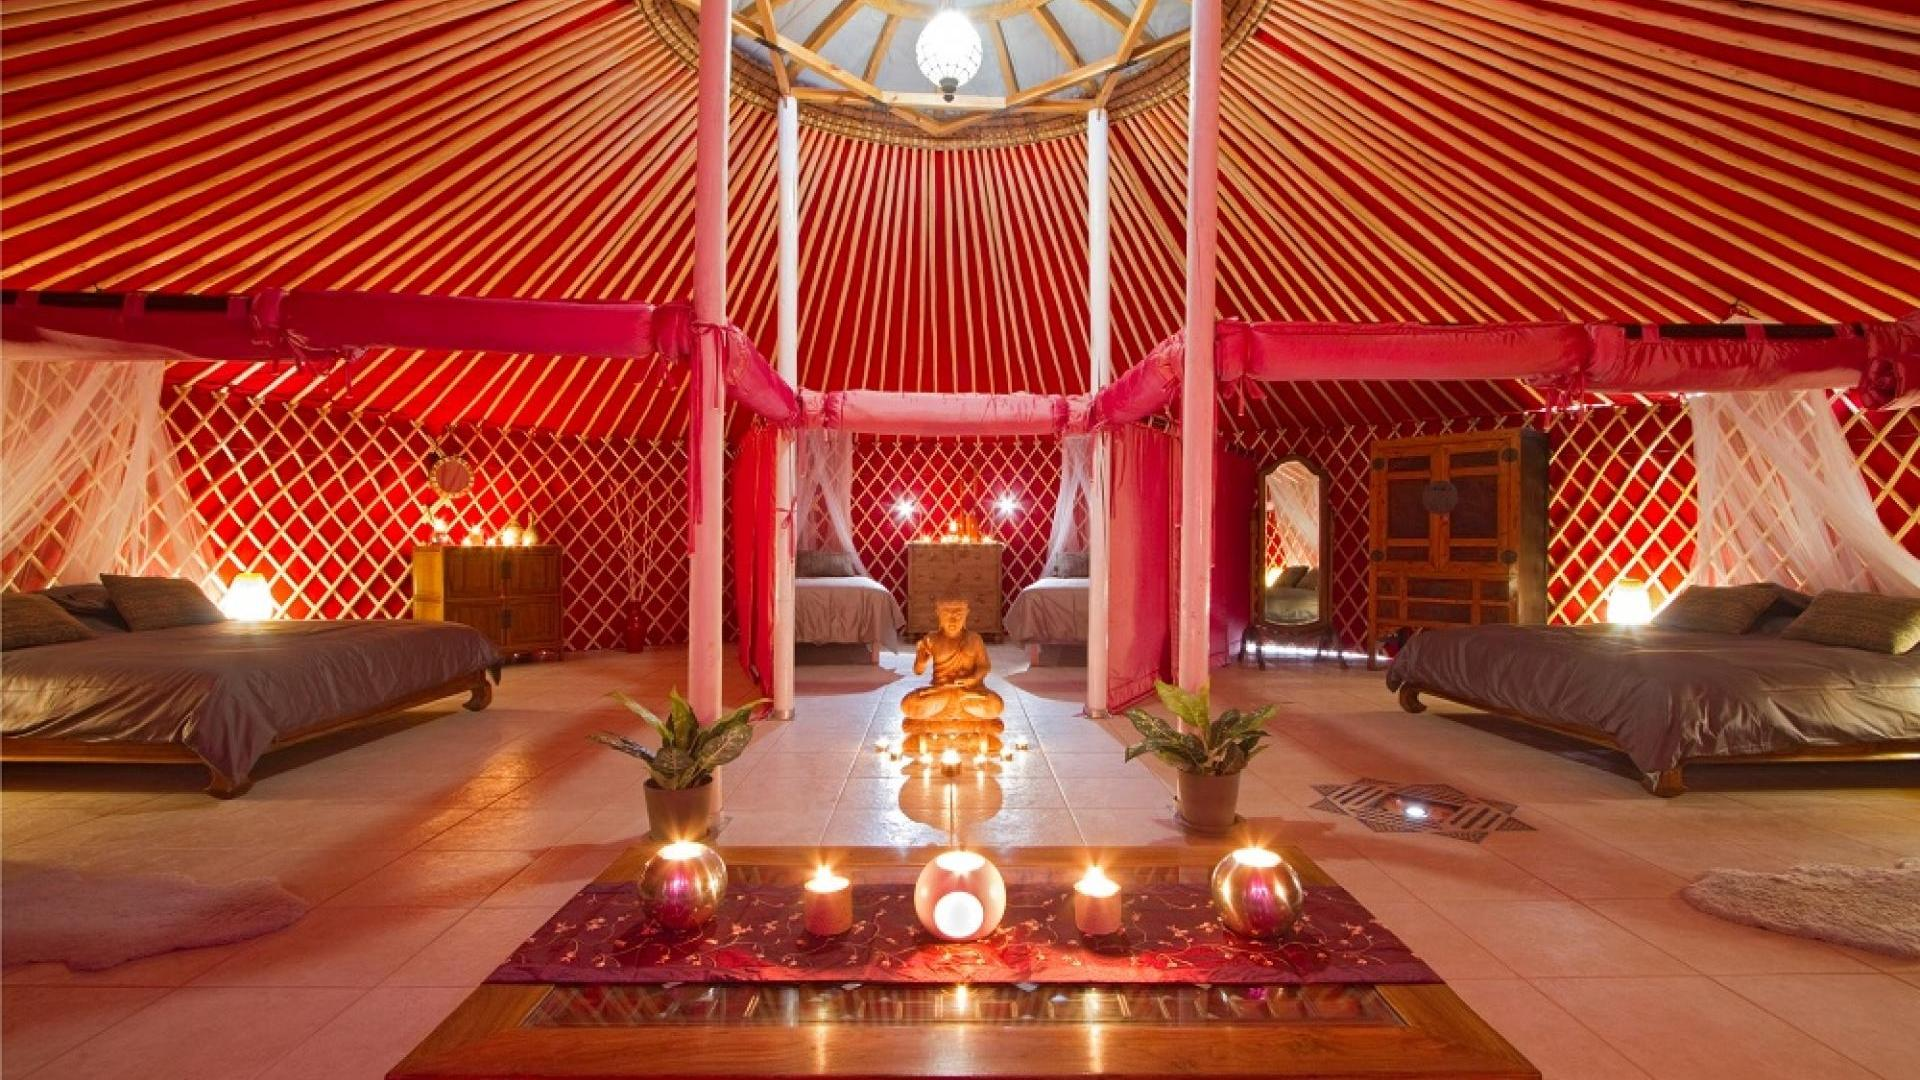 Family-friendly holiday yurts in Lanzarote - LTYU